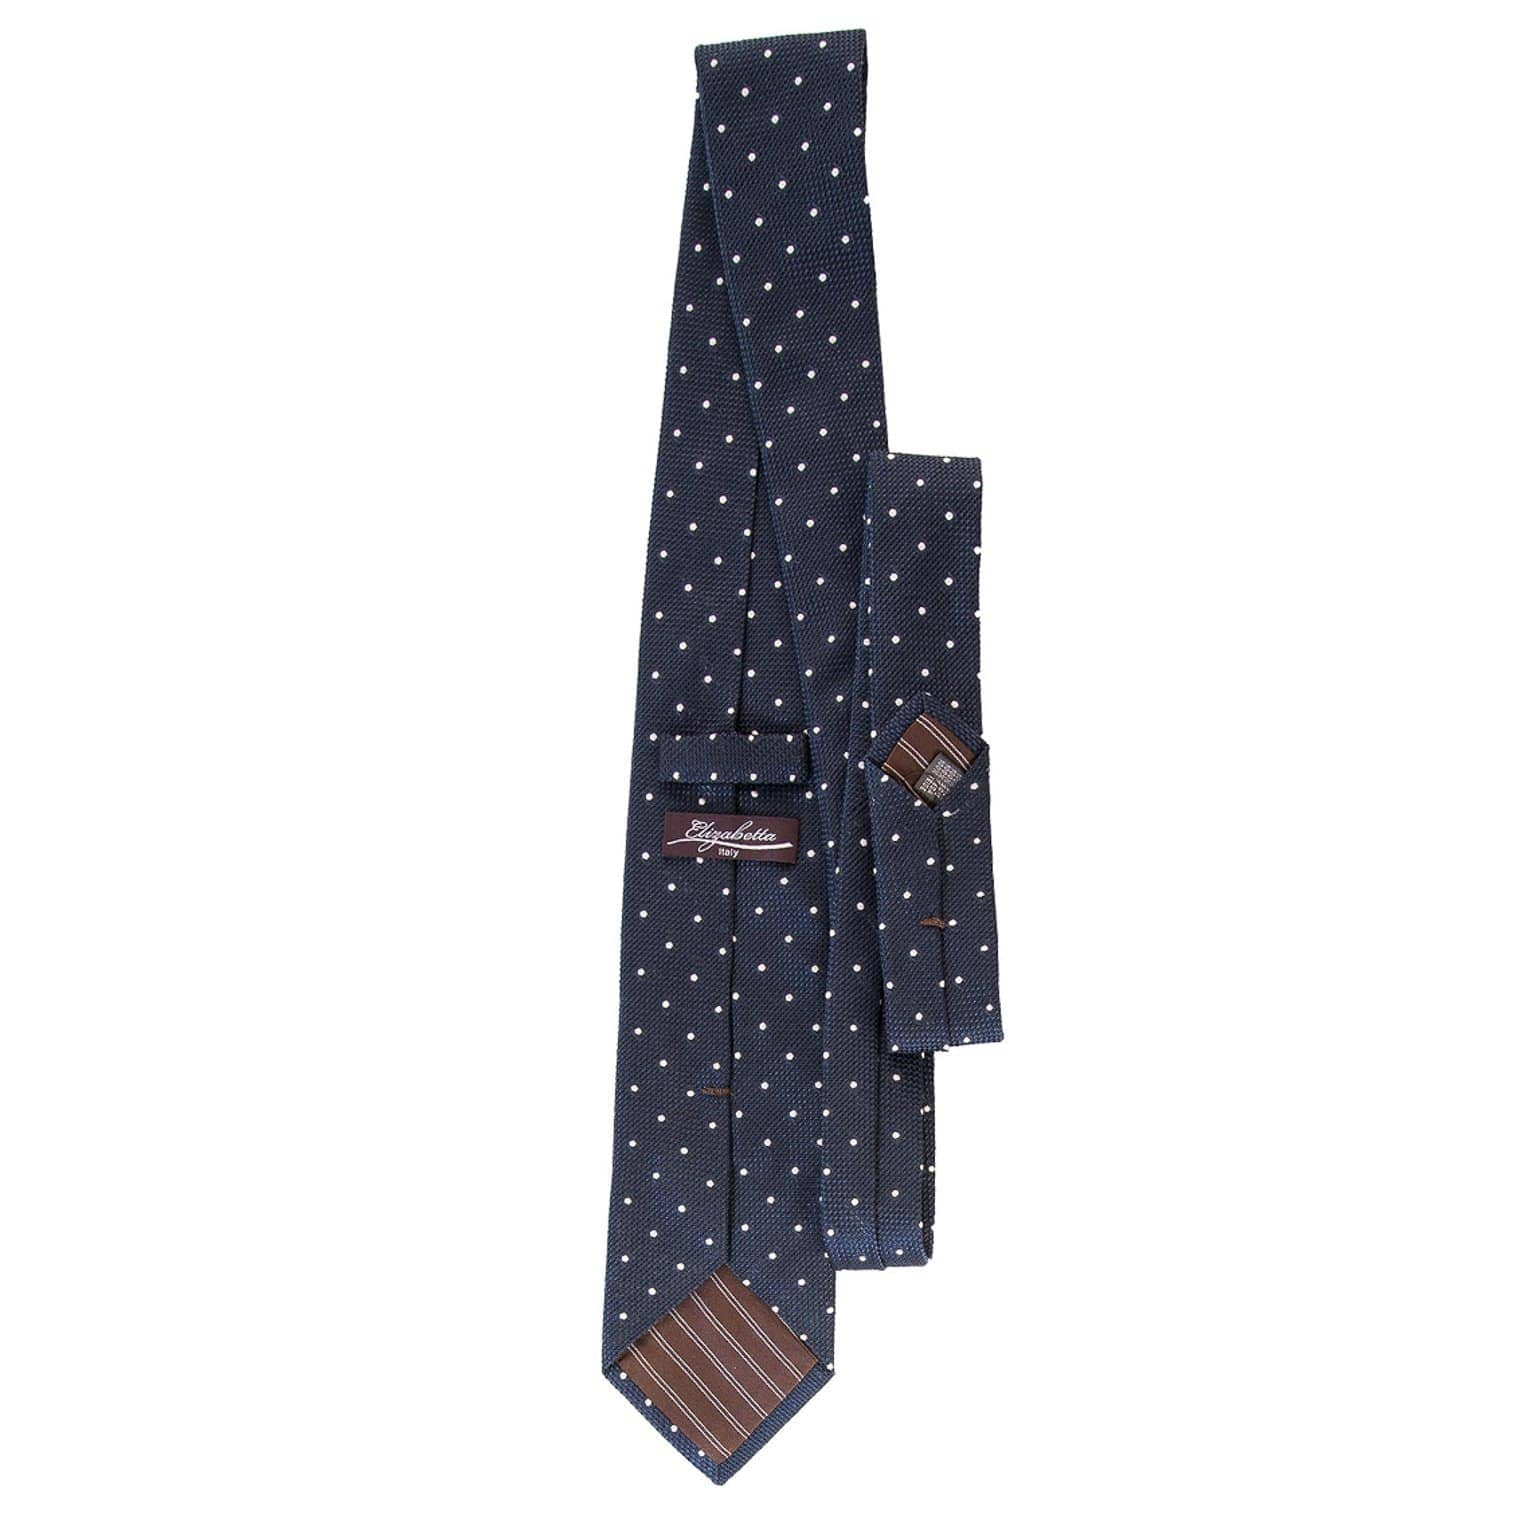 Extra Long Grenadine Tie - Navy Blue White Polka Dot